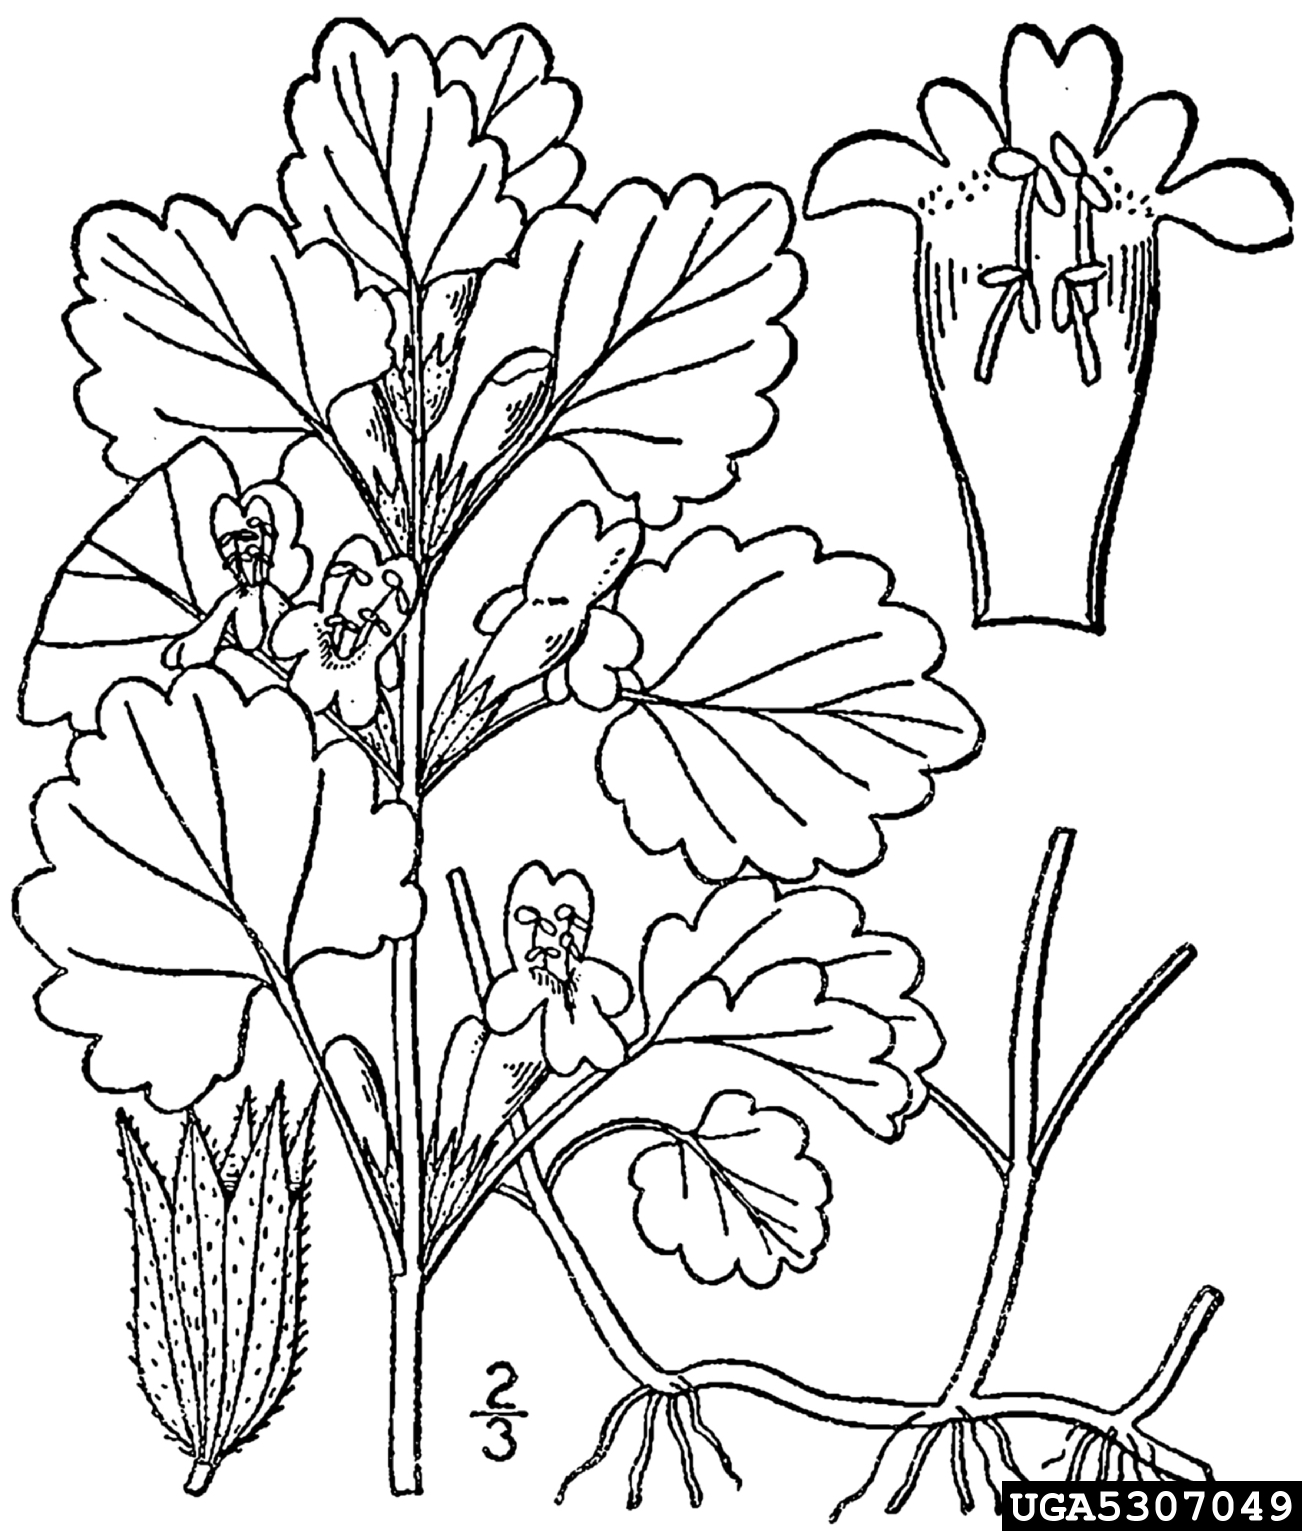 Ground ivy glechoma hederacea lamiales lamiaceae 5307049 rh invasive org diagram of mitochondria diagram of mini